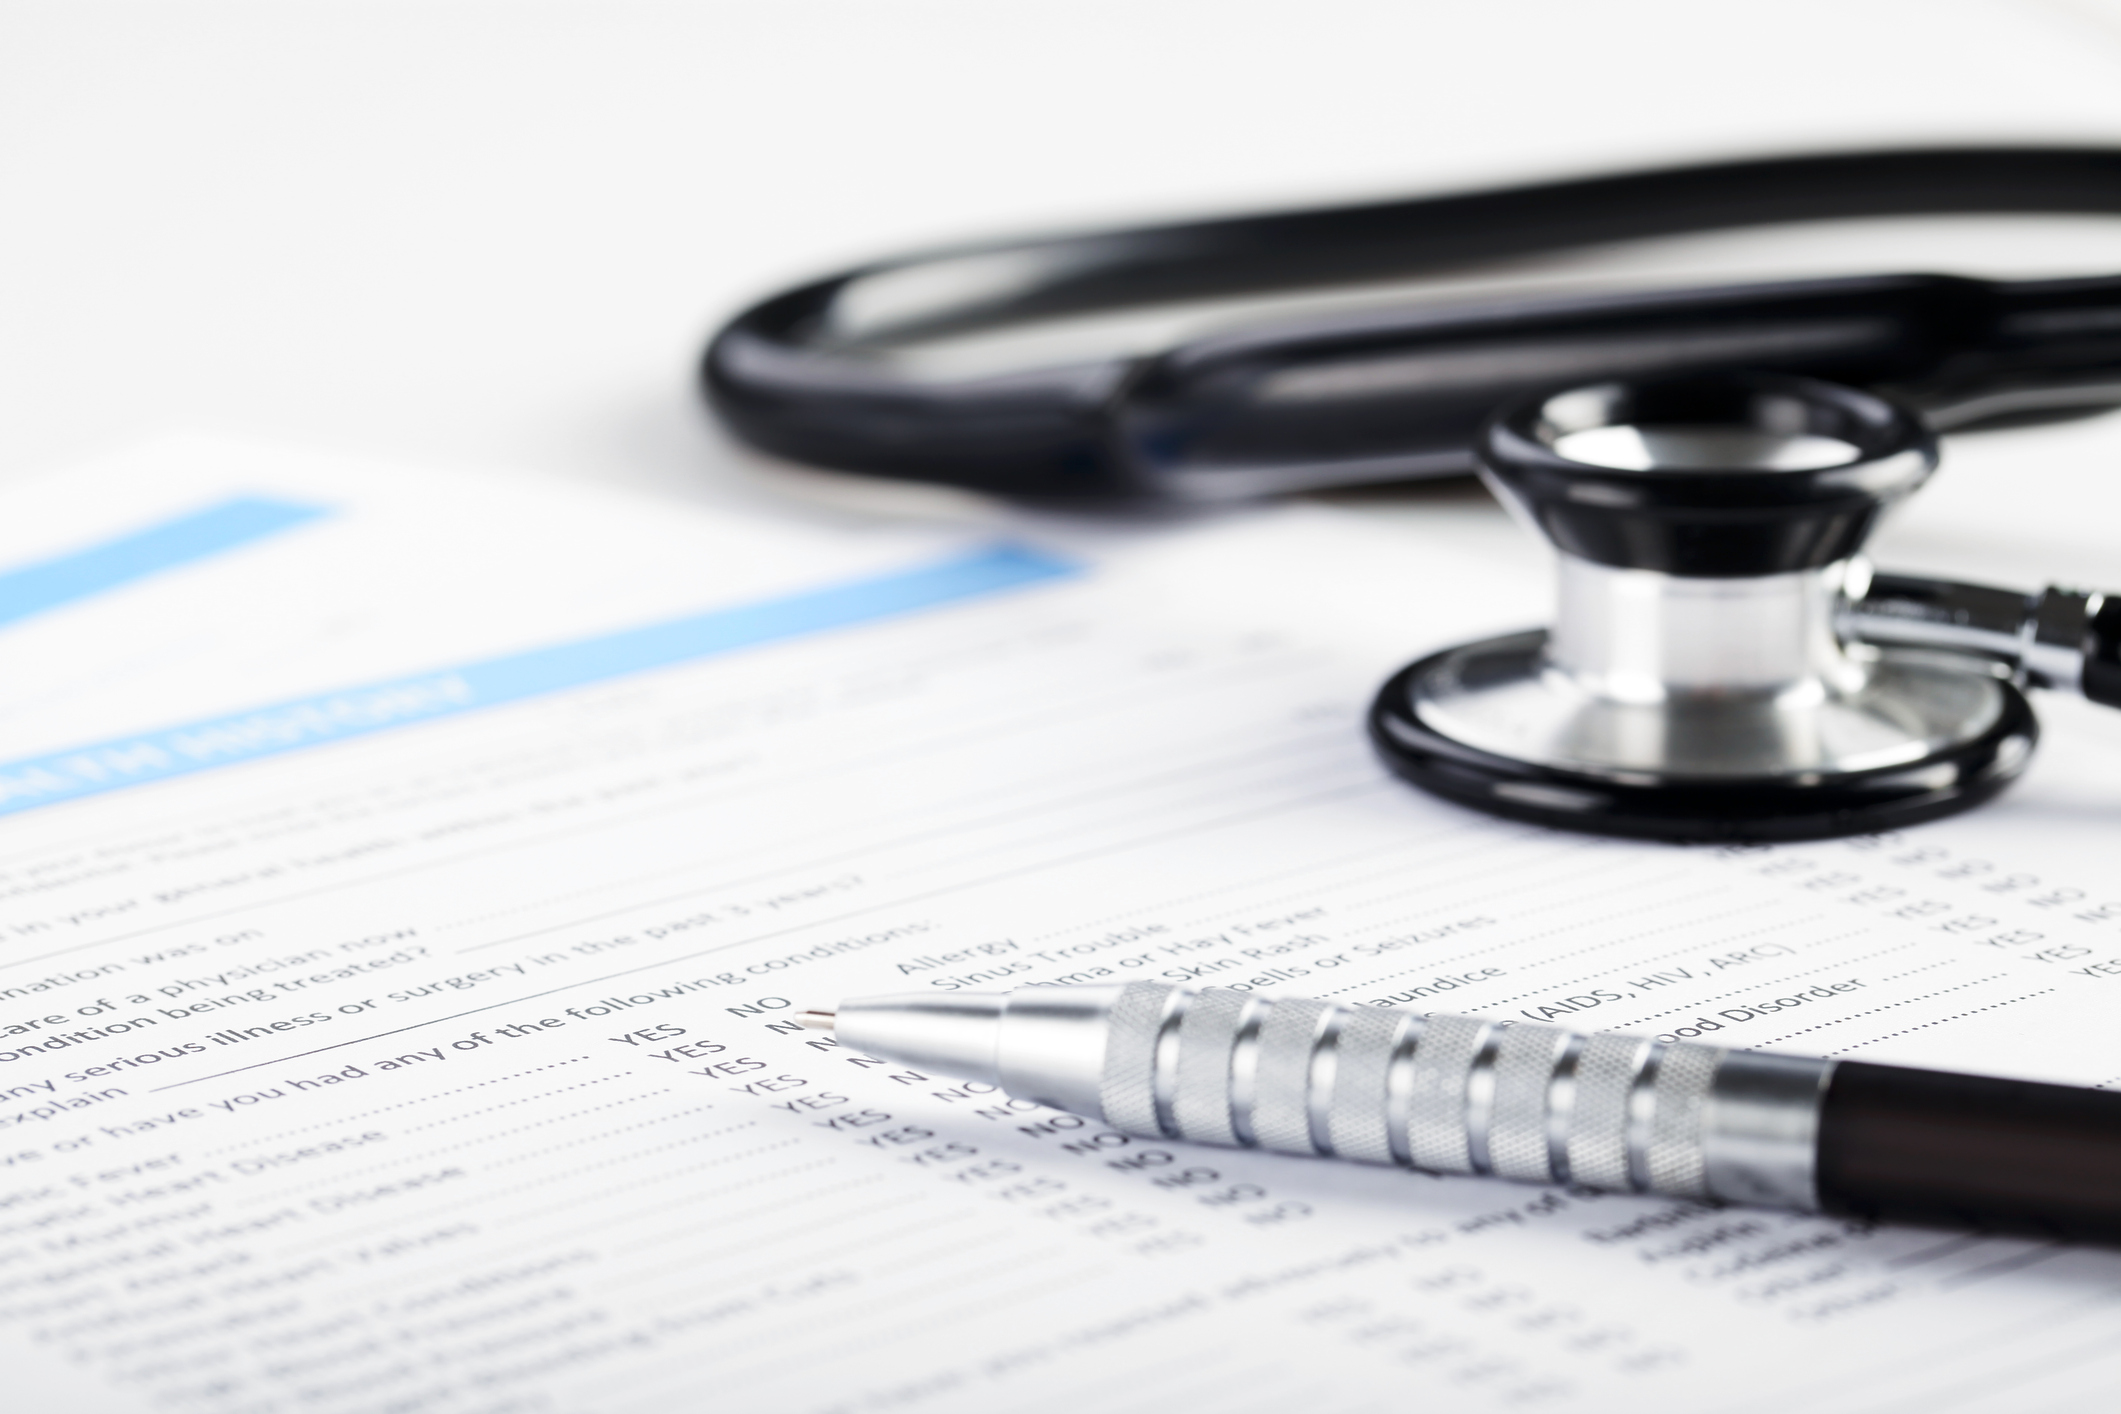 AFFORDABLE CARE ACT-EQUIVALENT HEALTH PLANS